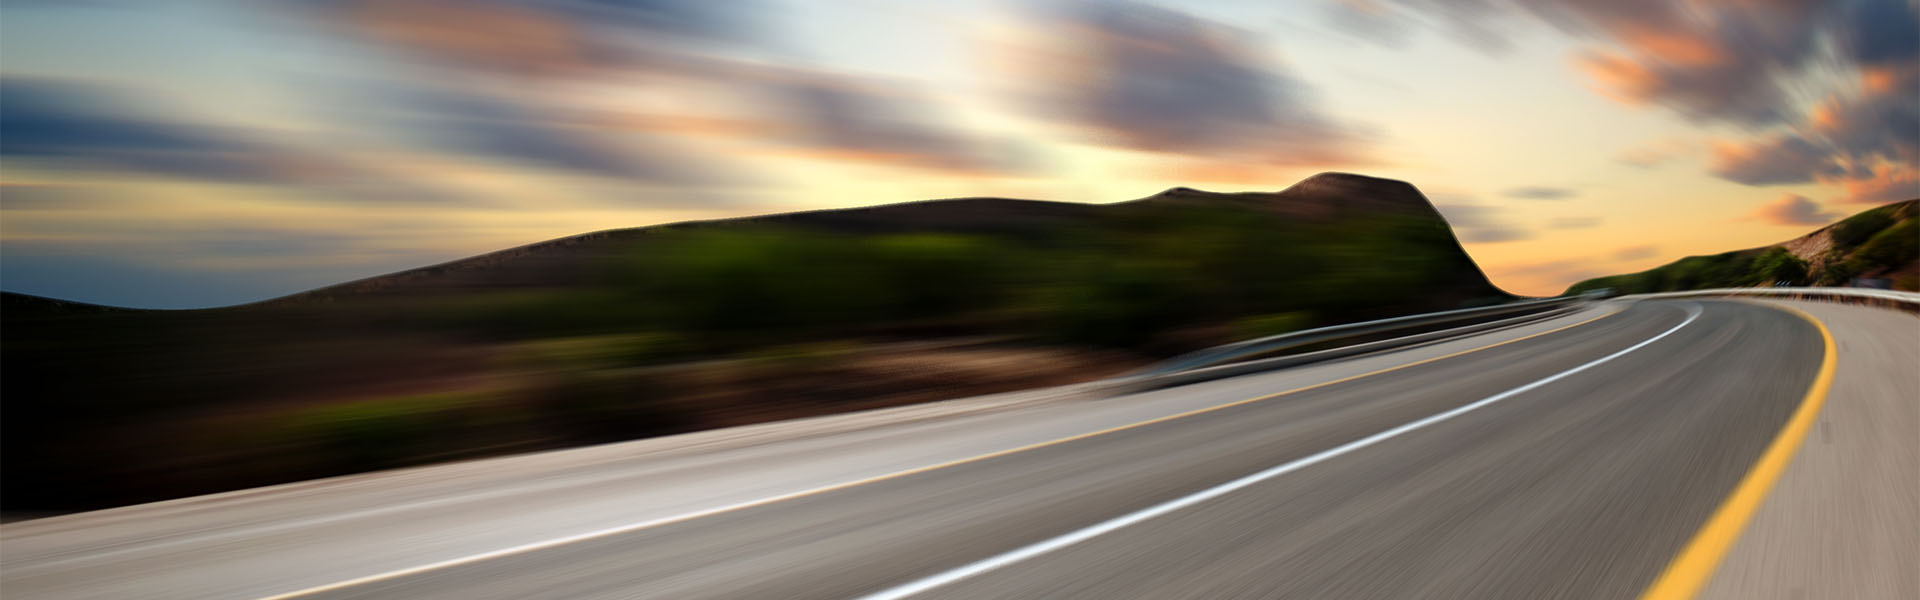 radial blur background road  poster  banner  photography